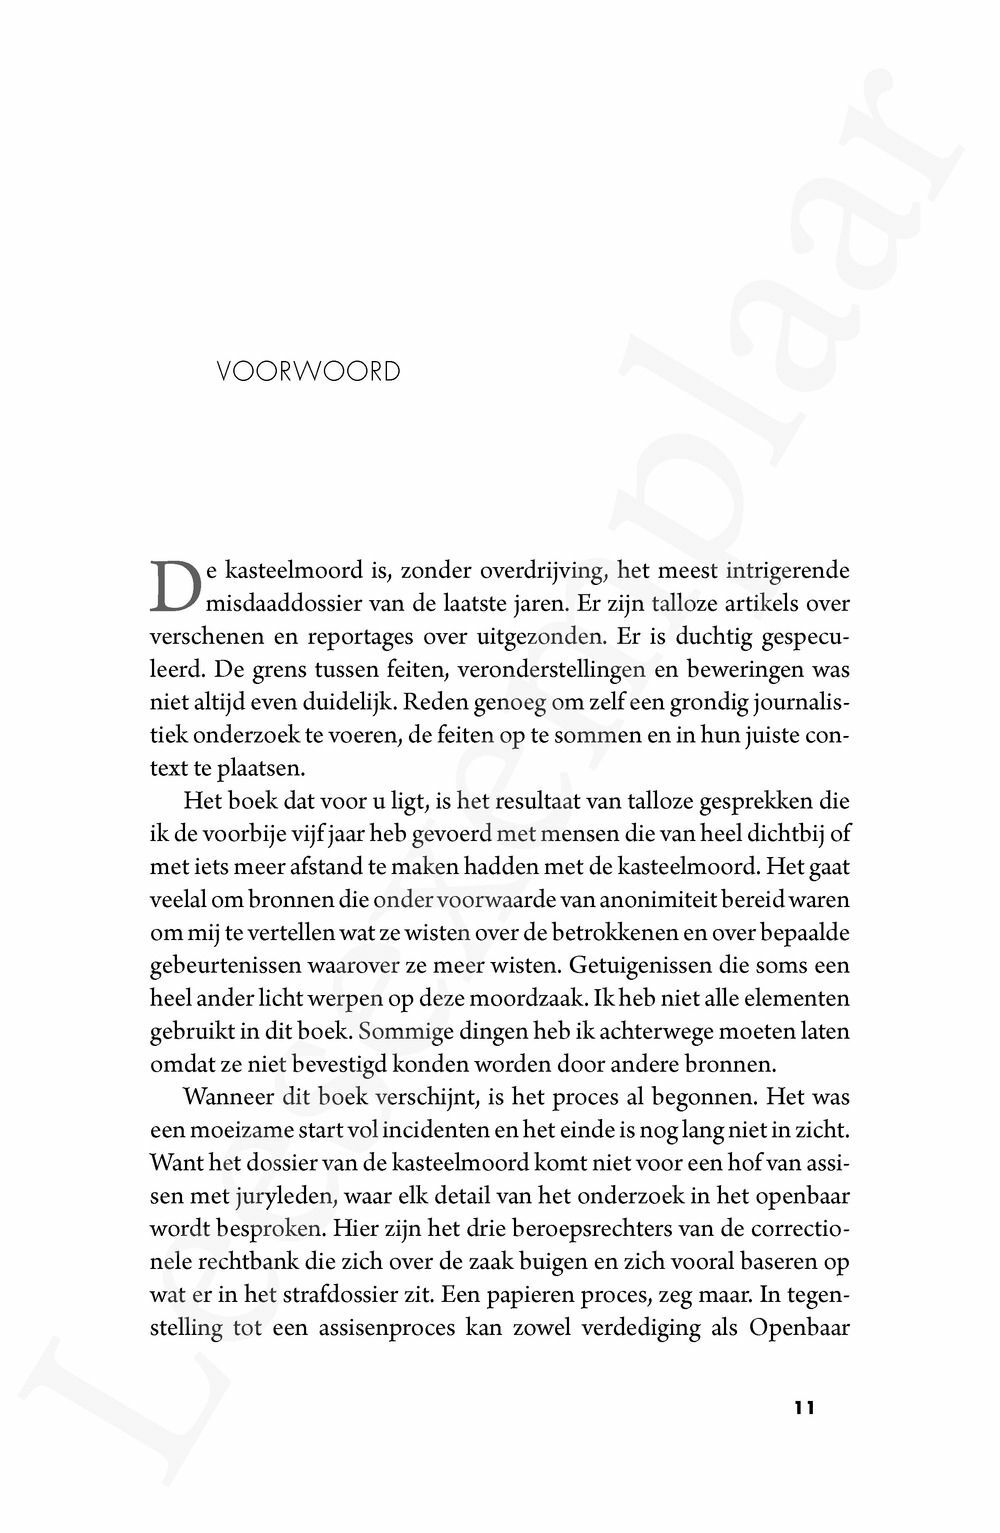 Preview: De kasteelmoord